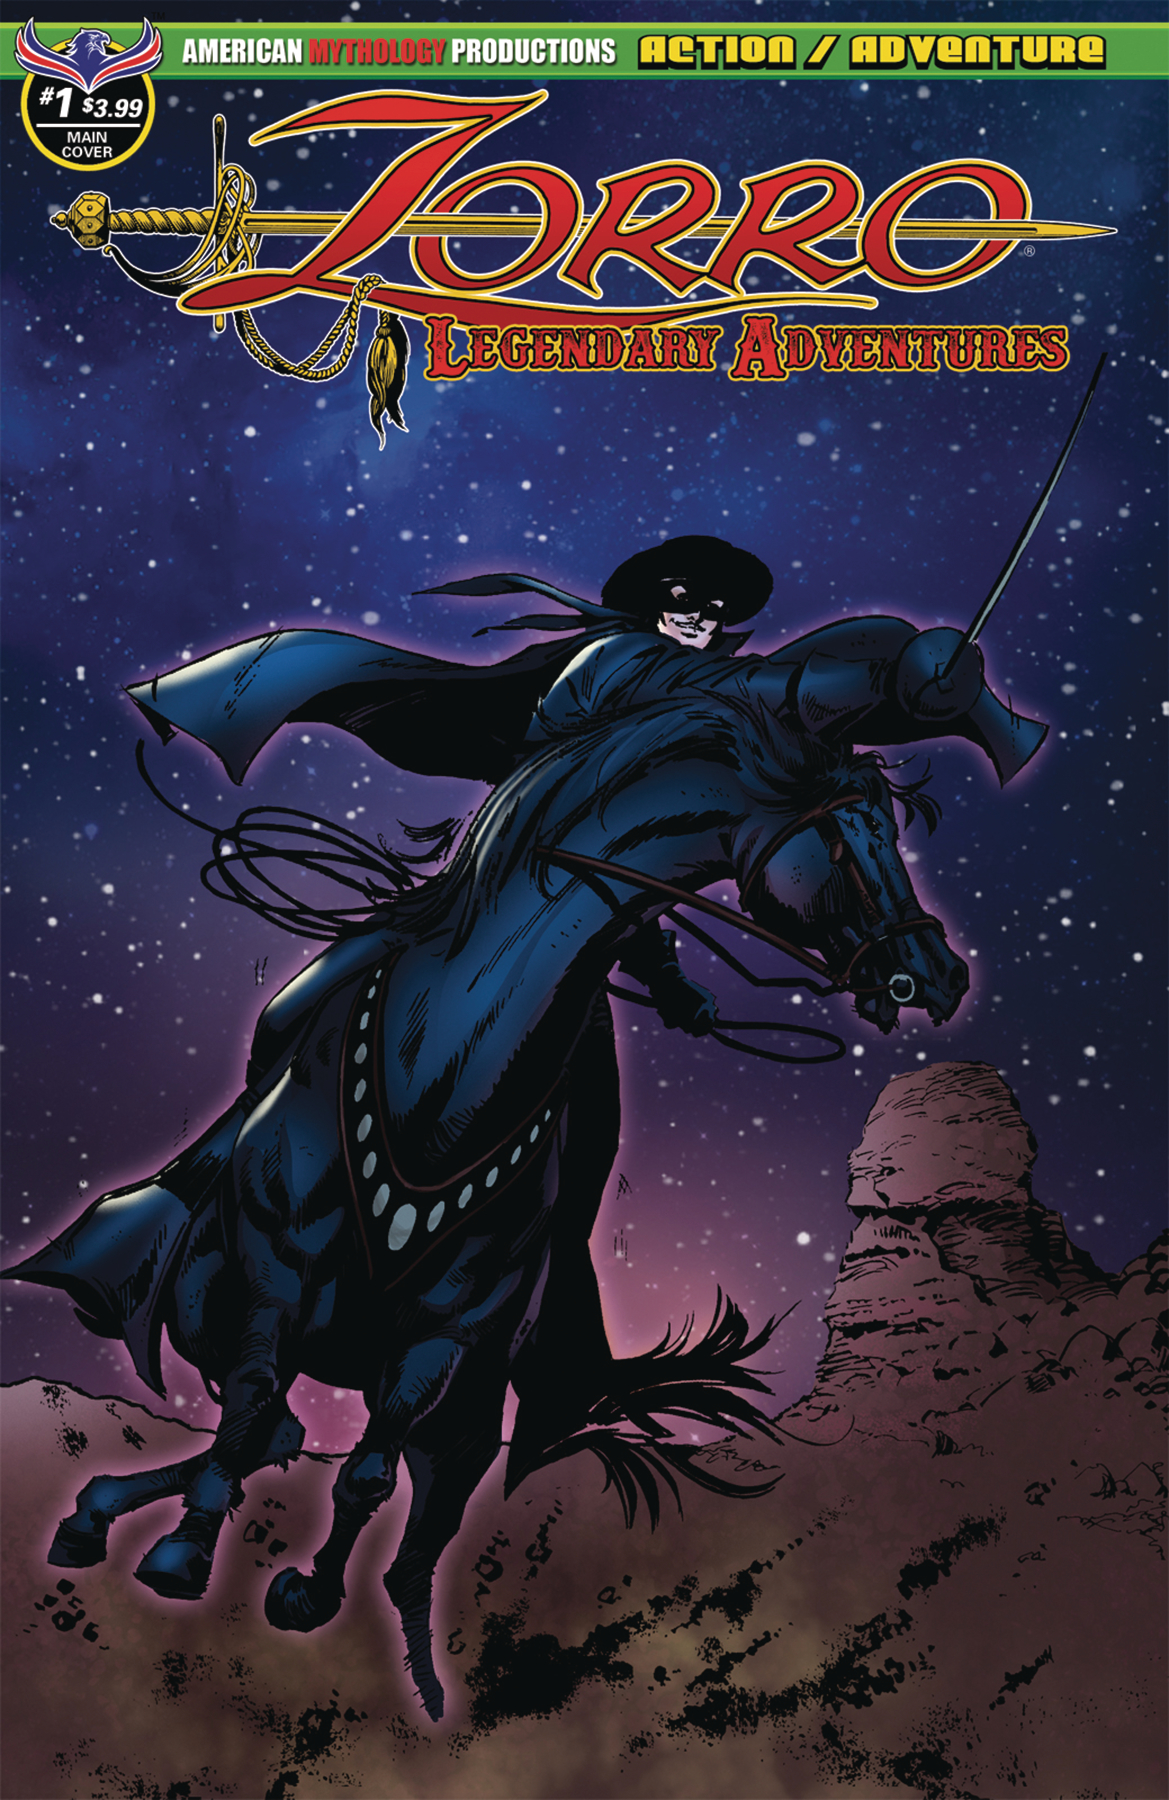 ZORRO LEGENDARY ADVENTURES #1 MAIN CVR